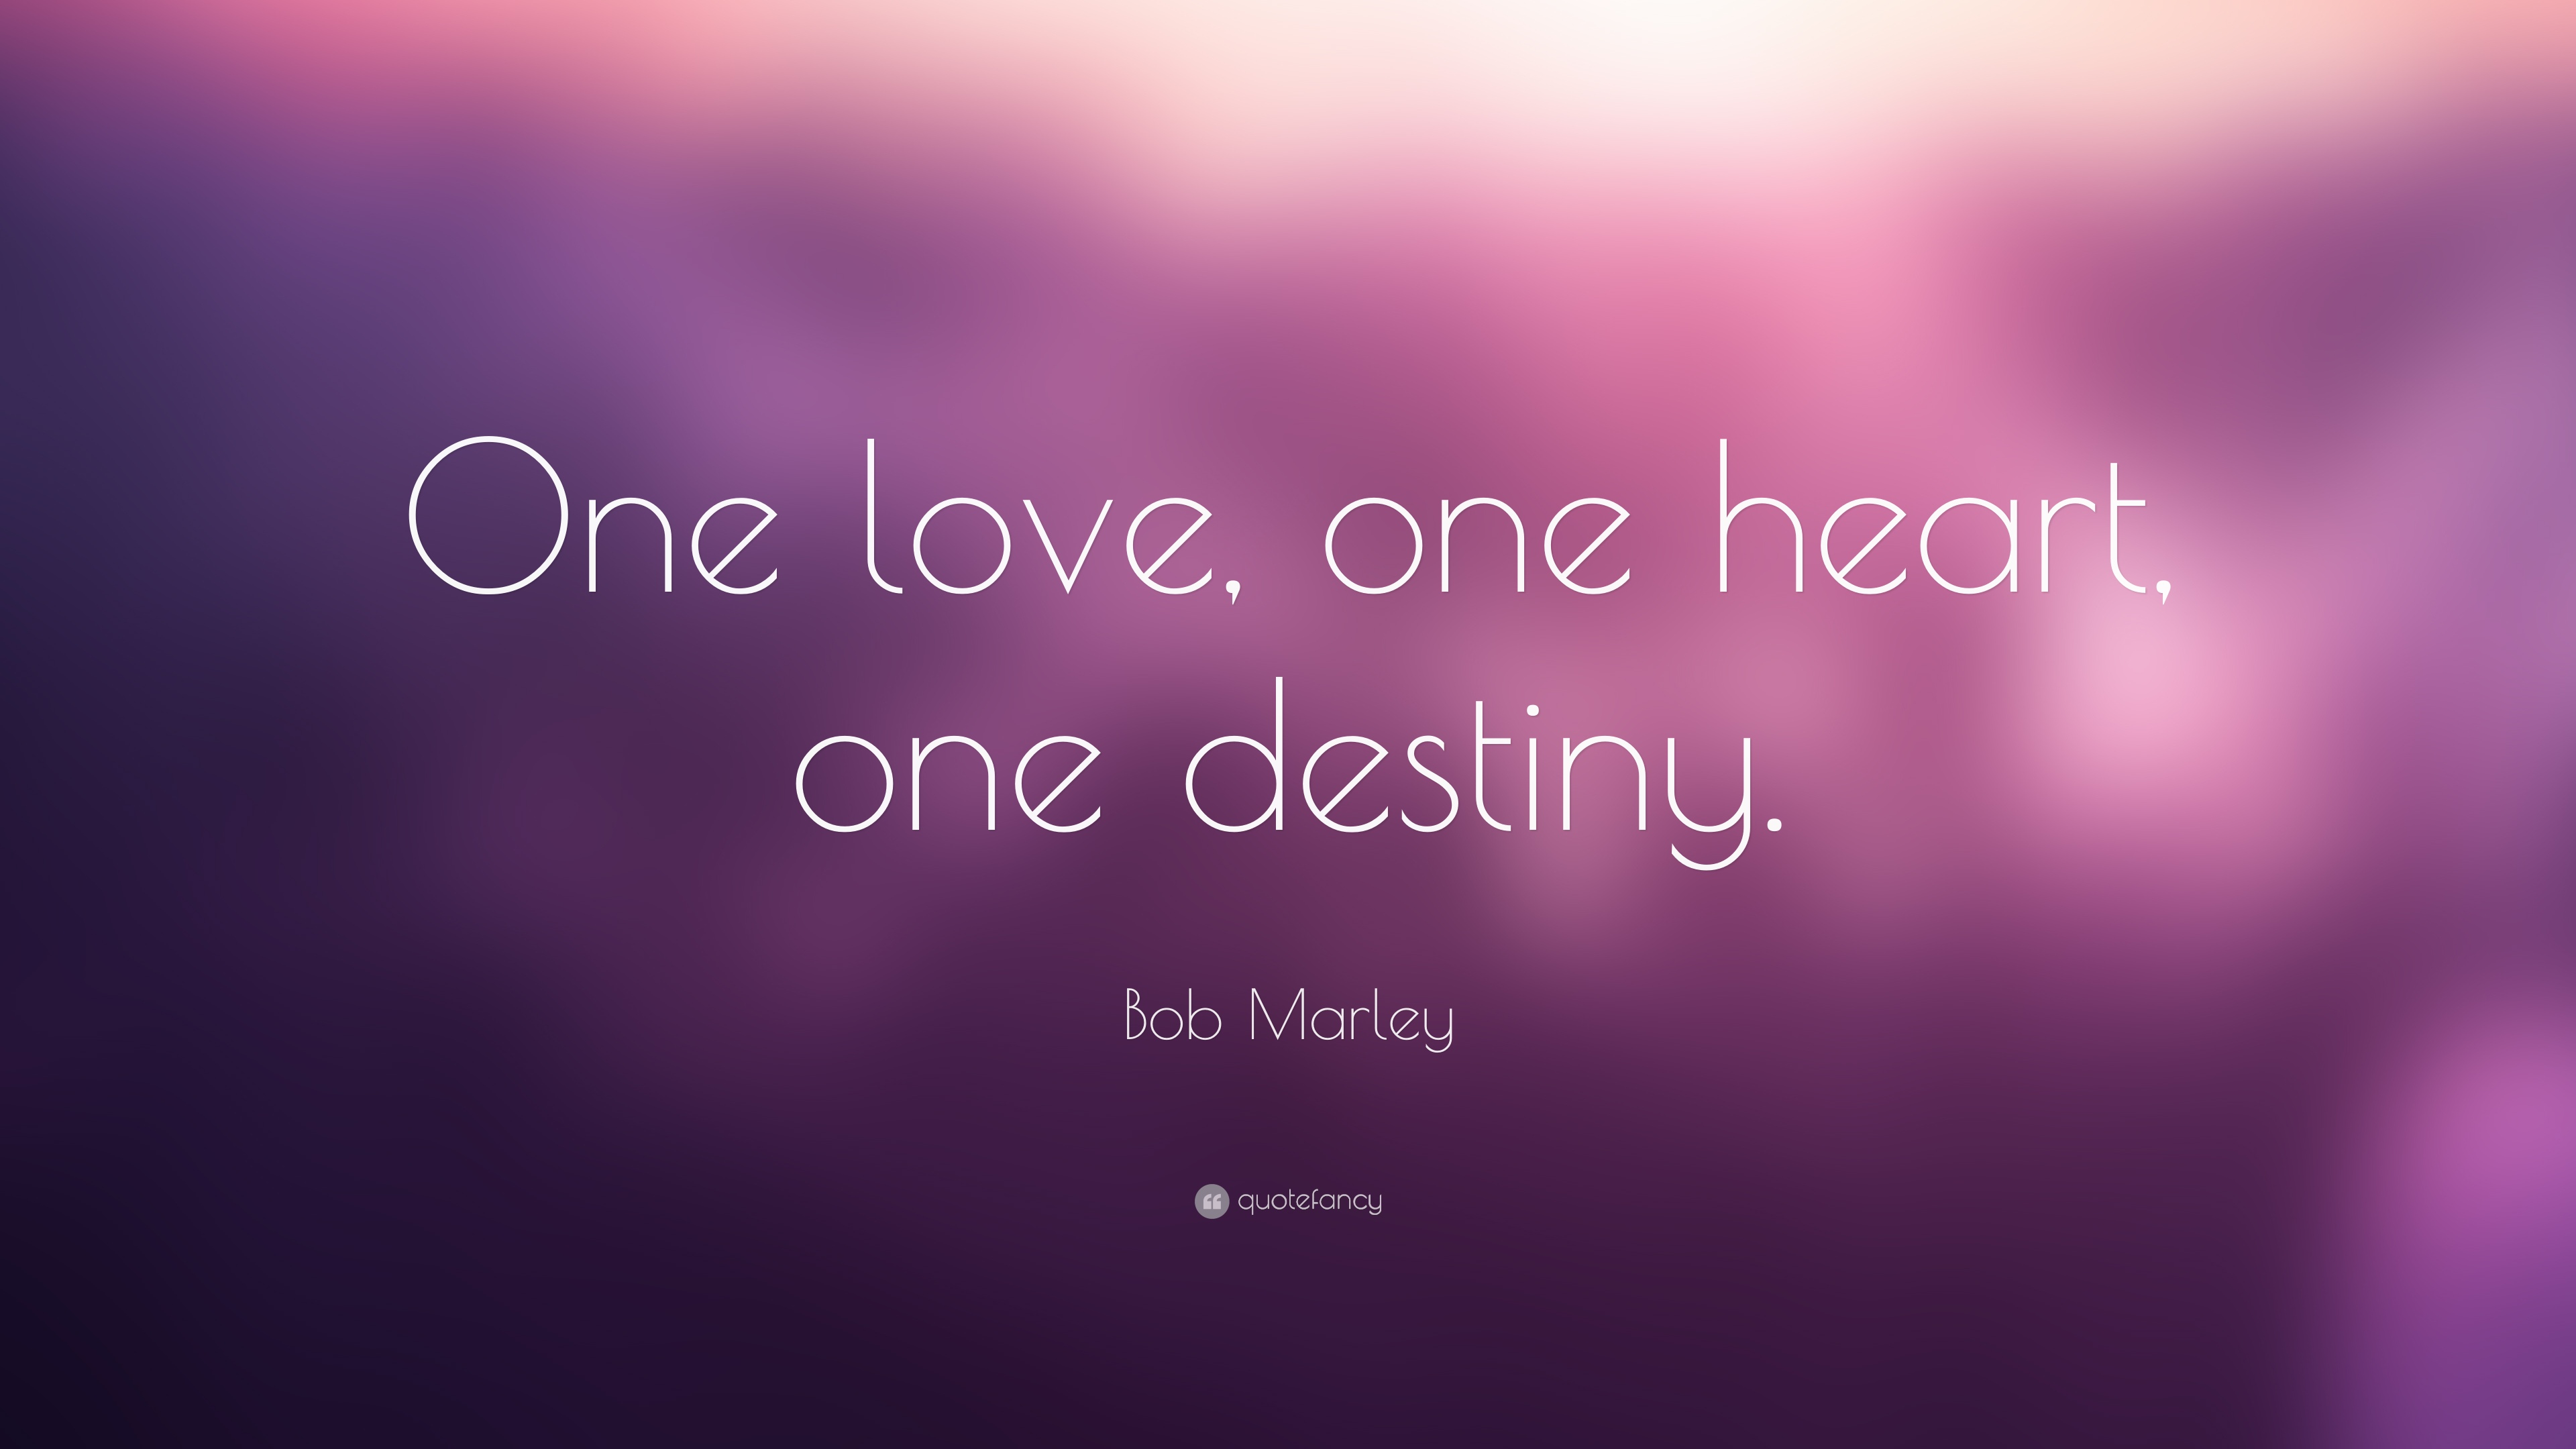 Quotes About Love Love Quotes 26 Wallpapers  Quotefancy